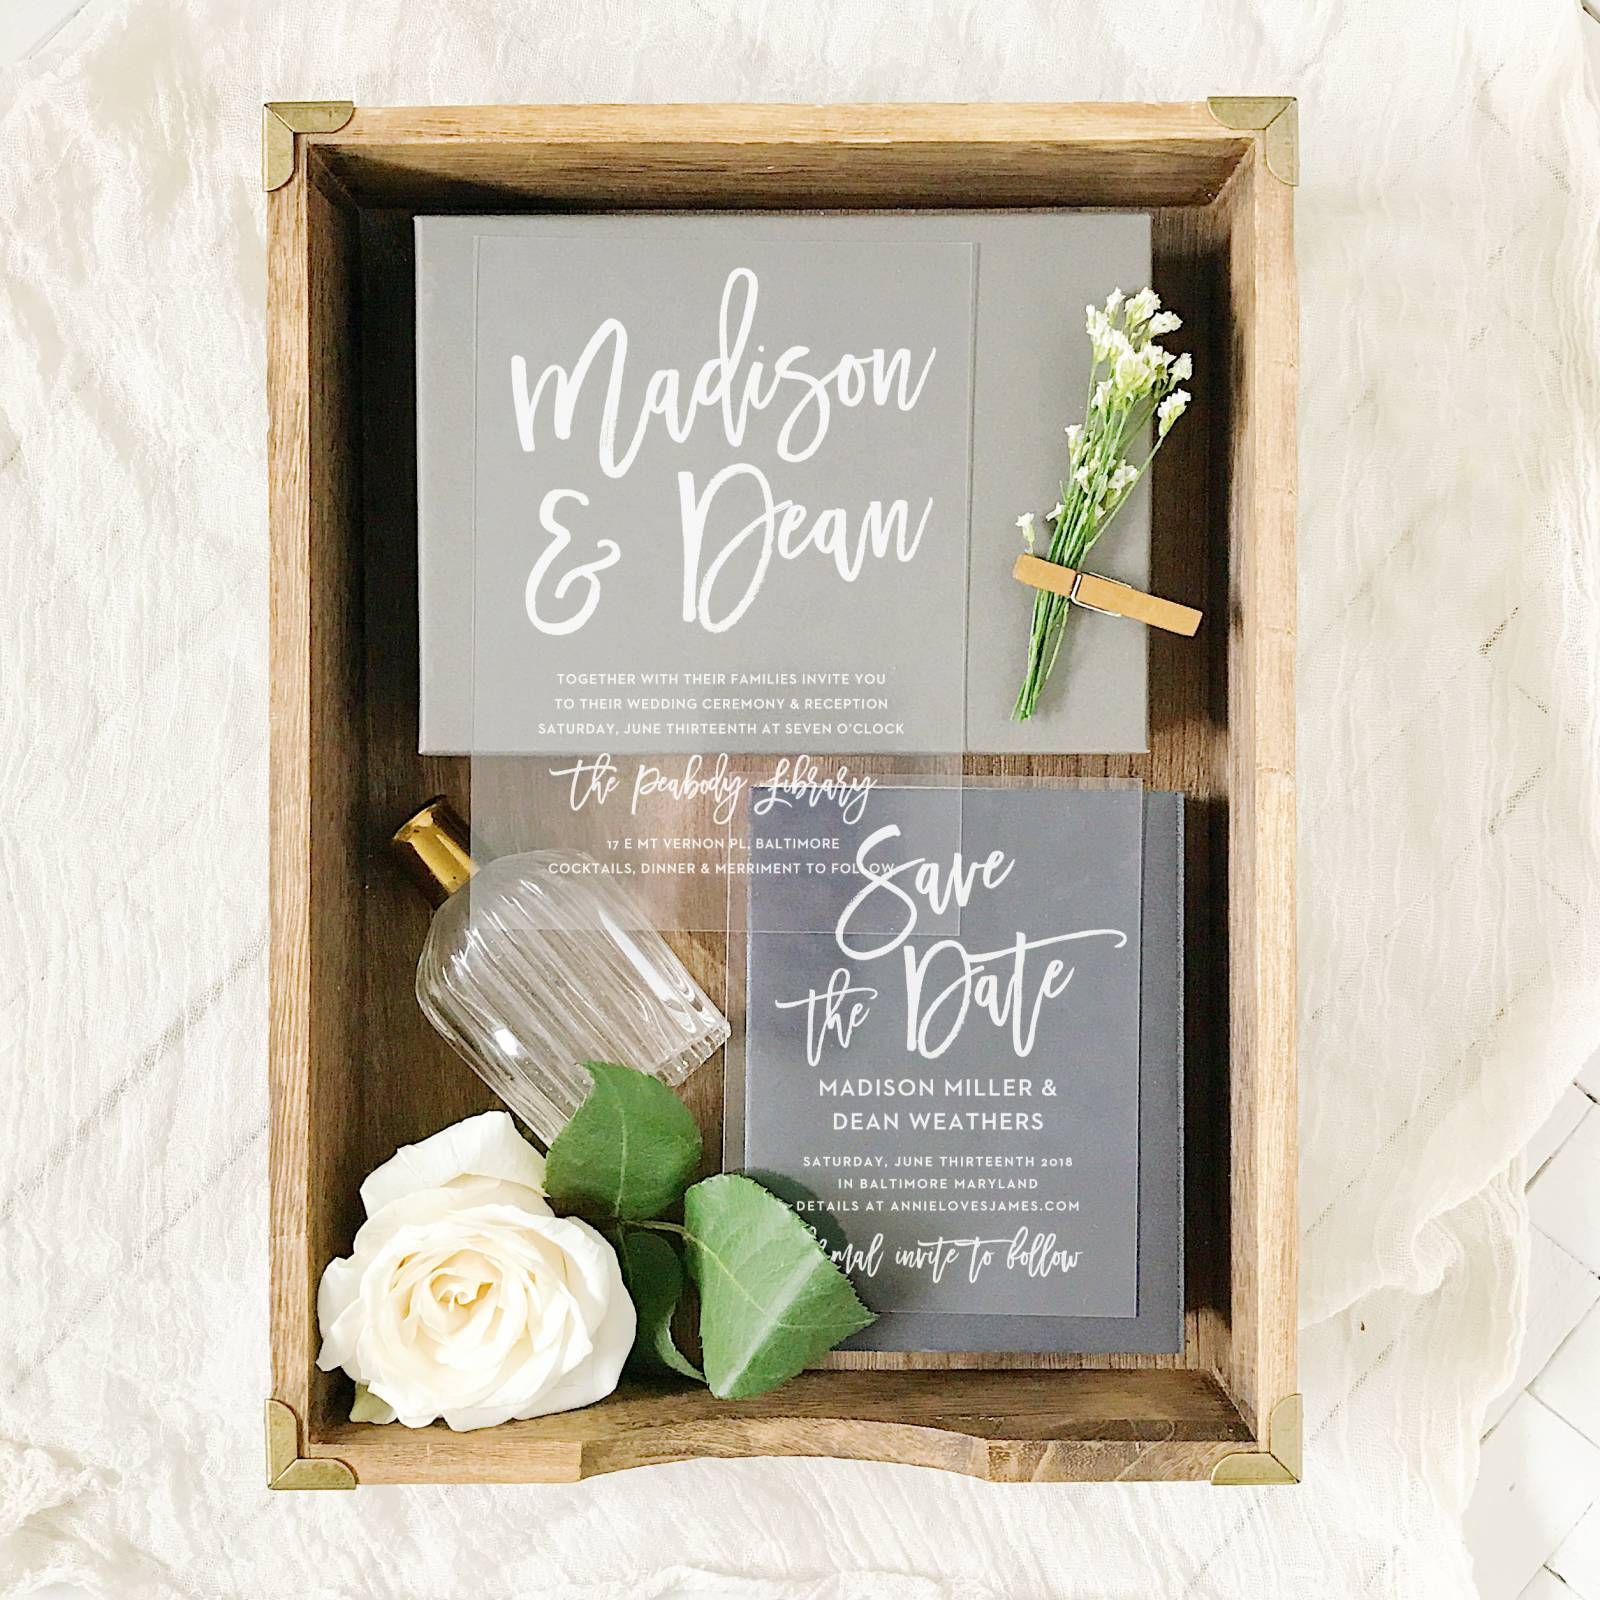 BEAUTIFUL WEDDING INVITATION SUITES FROM